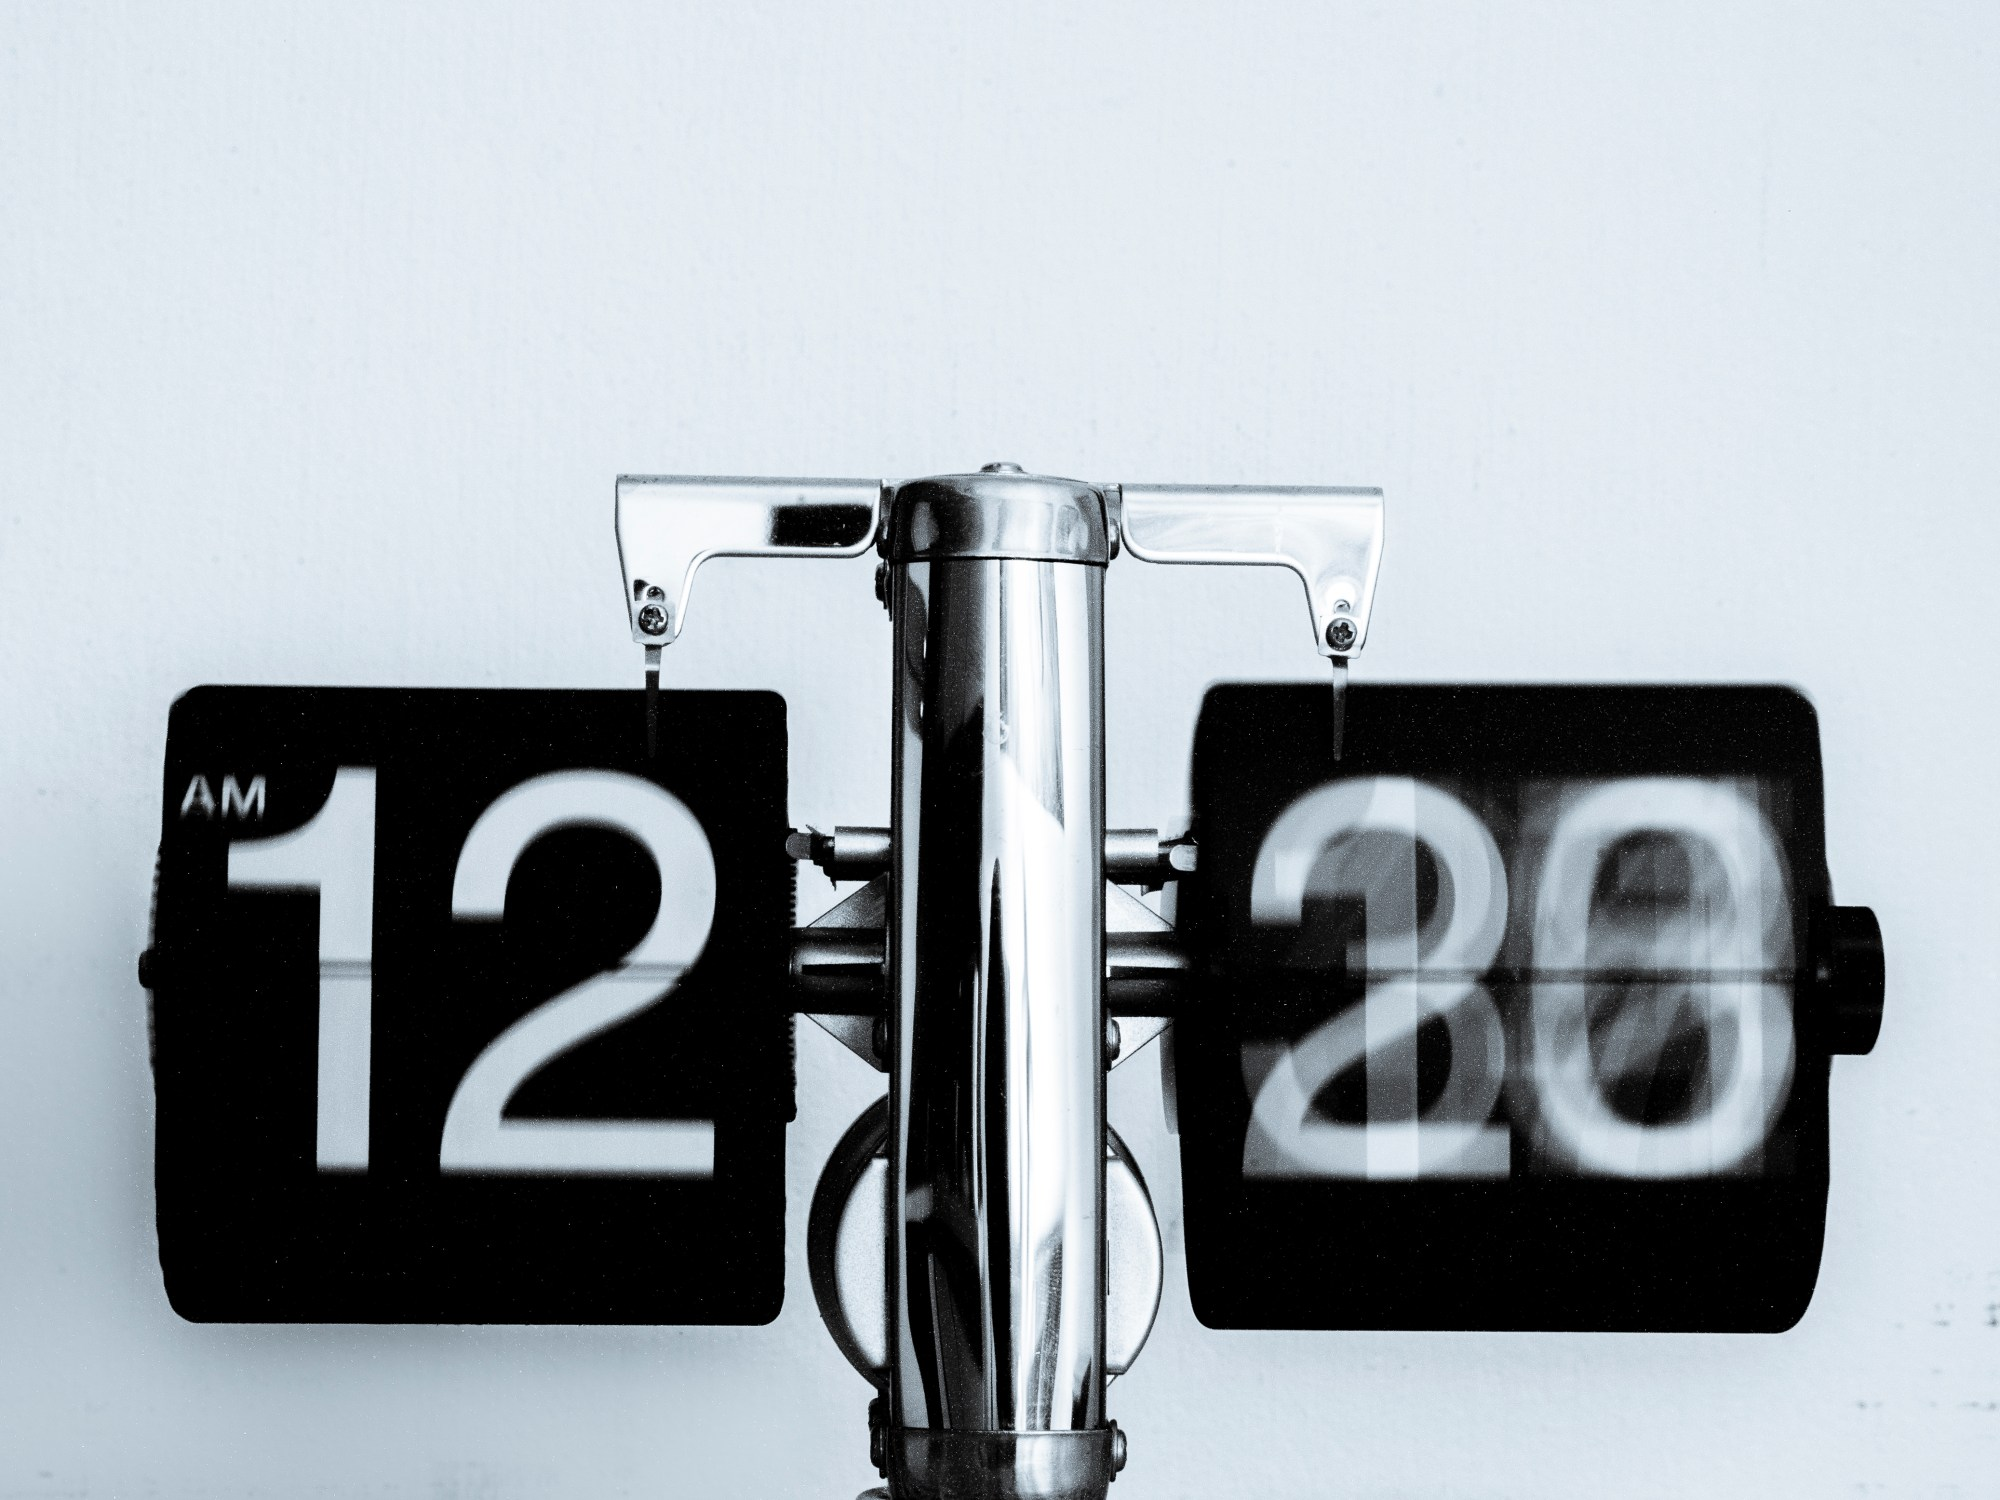 Signification des heures miroirs 11h11 12h12 13h13 14h14 for Heure miroir 06h06